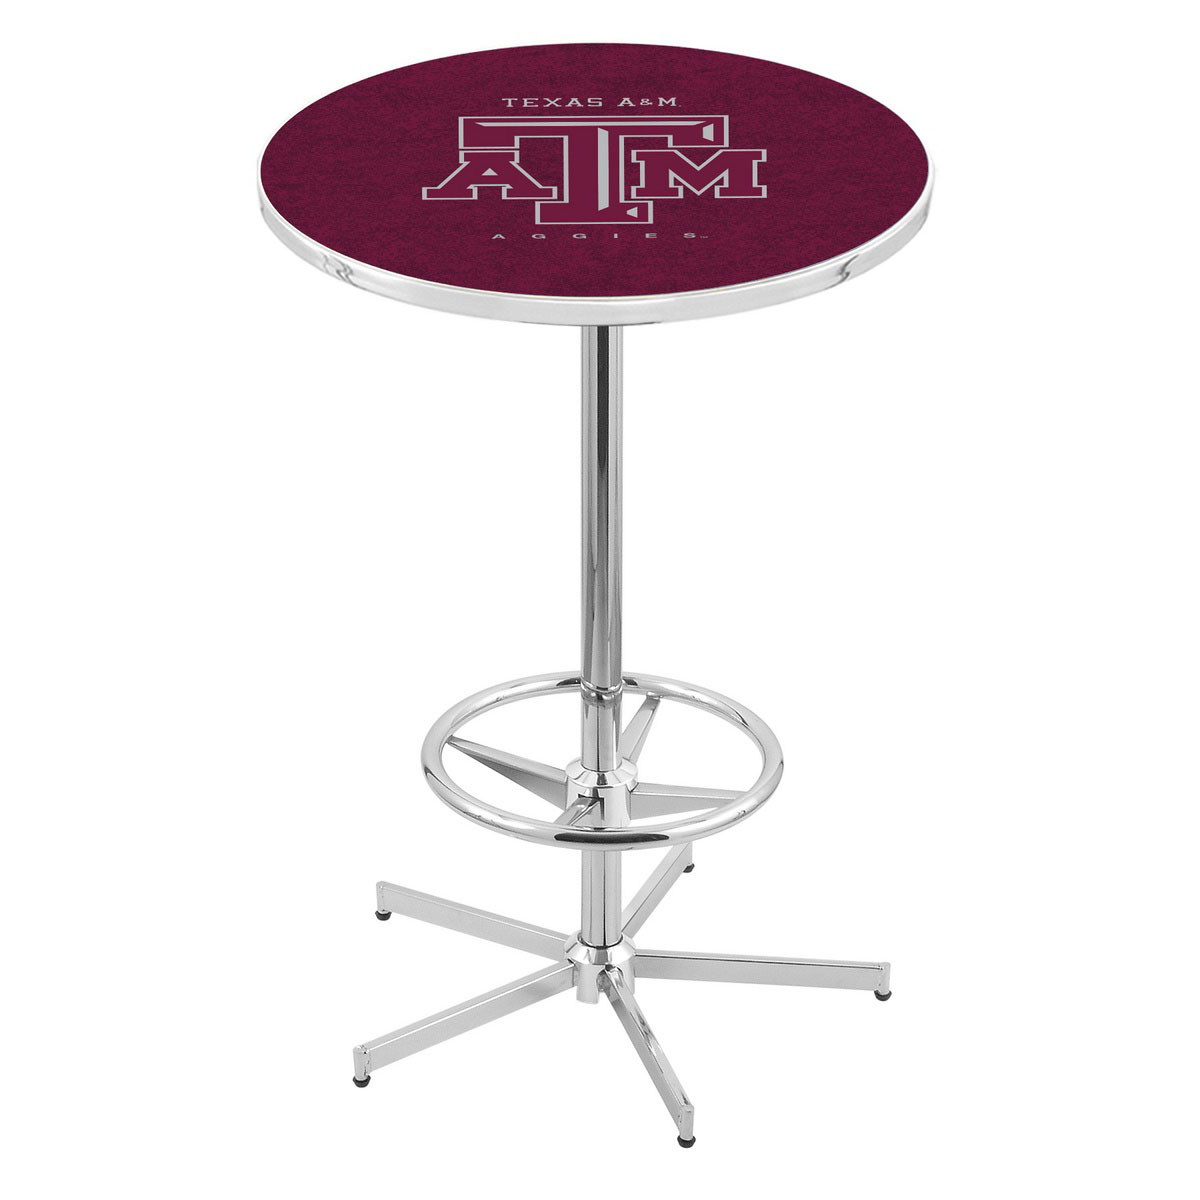 Magnificent Chrome Texas A Pub Table Product Photo